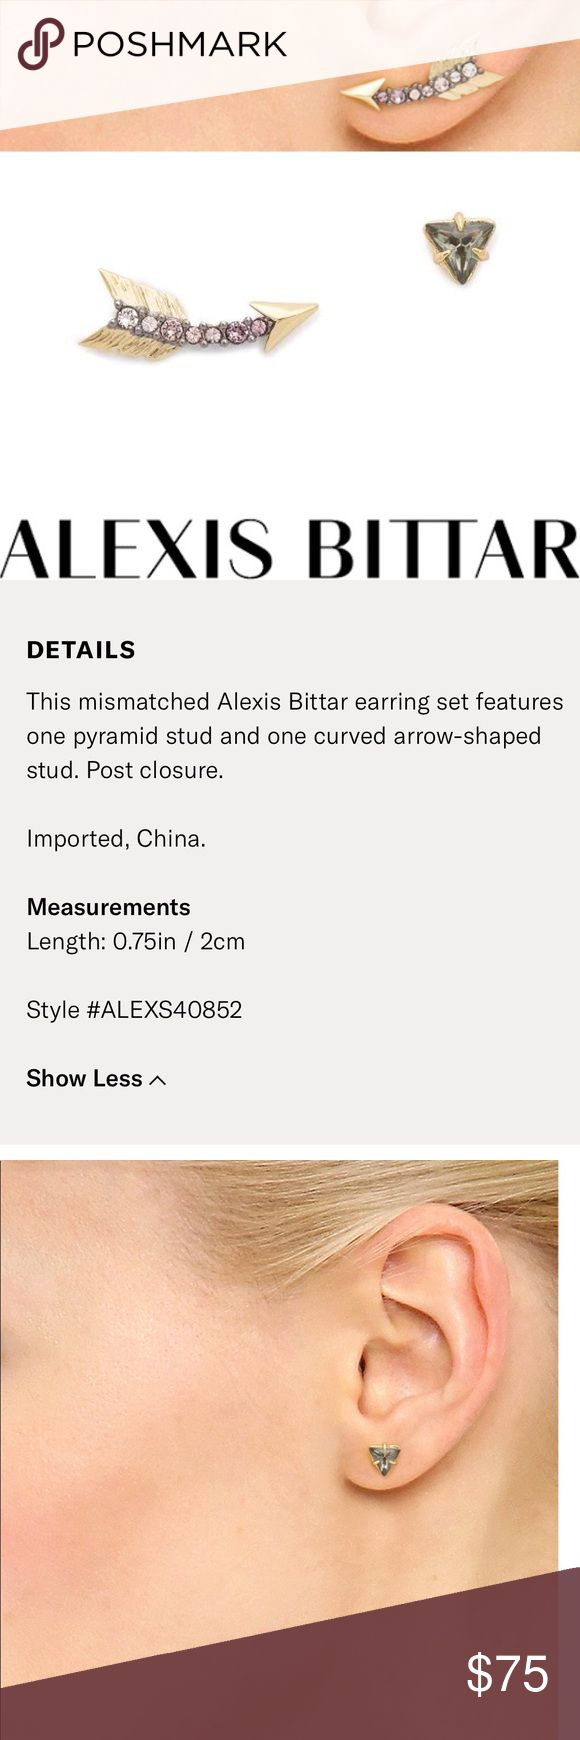 Alexis Bittar missmatch ombre stud earrings arrow Super cute miss matched set. Like new- worn once. Still for sale on Shopbop. See above for more product details. ✨ Alexis Bittar Jewelry Earrings